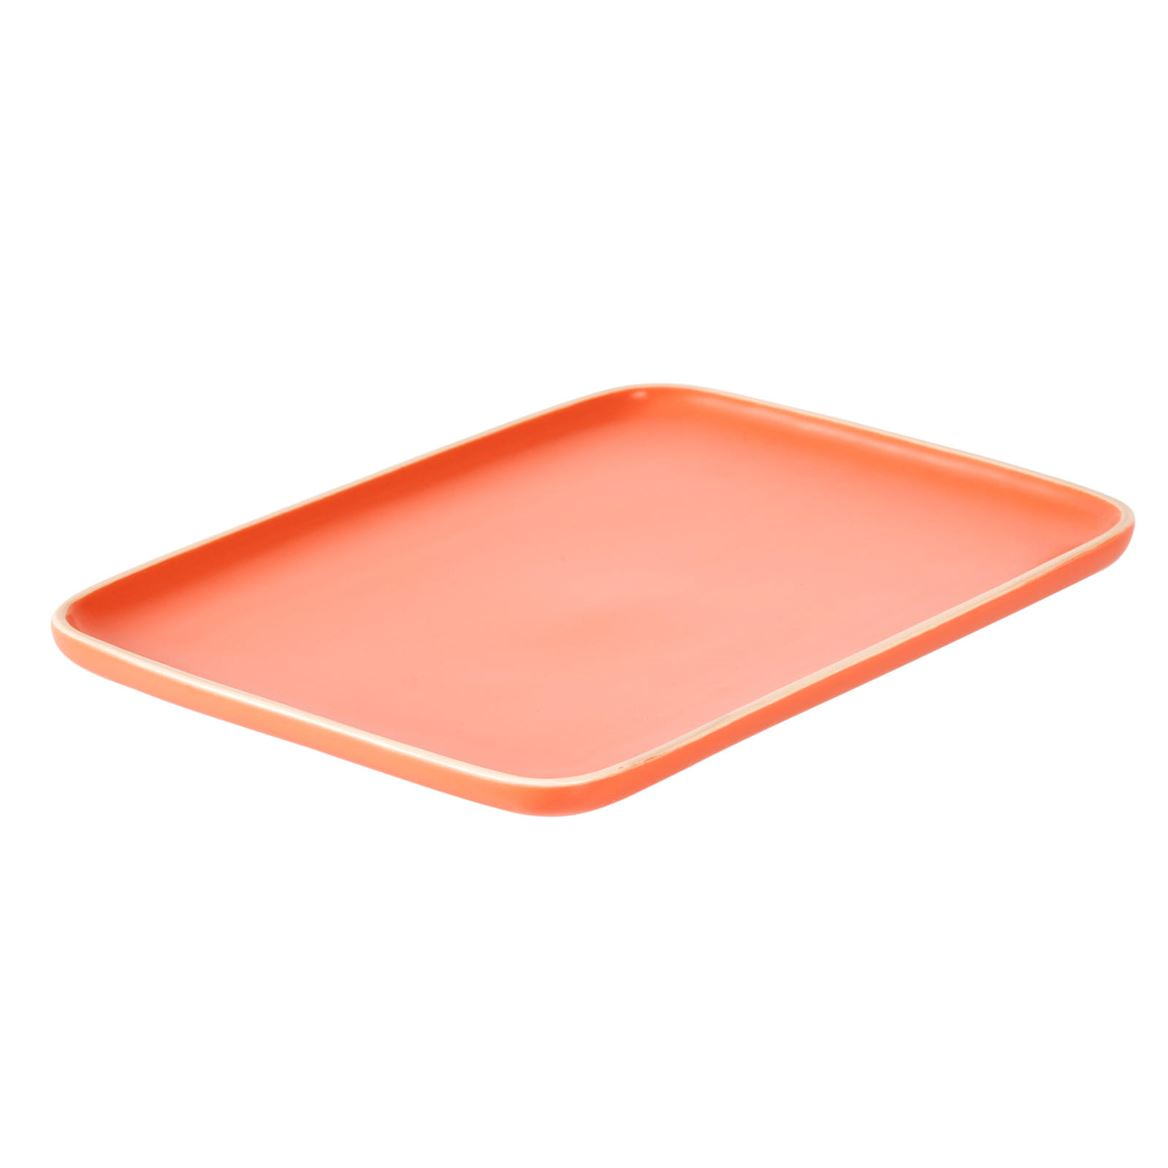 ELEMENTS Plato naranja An. 21.5 x L 30 cm_elements-plato-naranja-an--21-5-x-l-30-cm